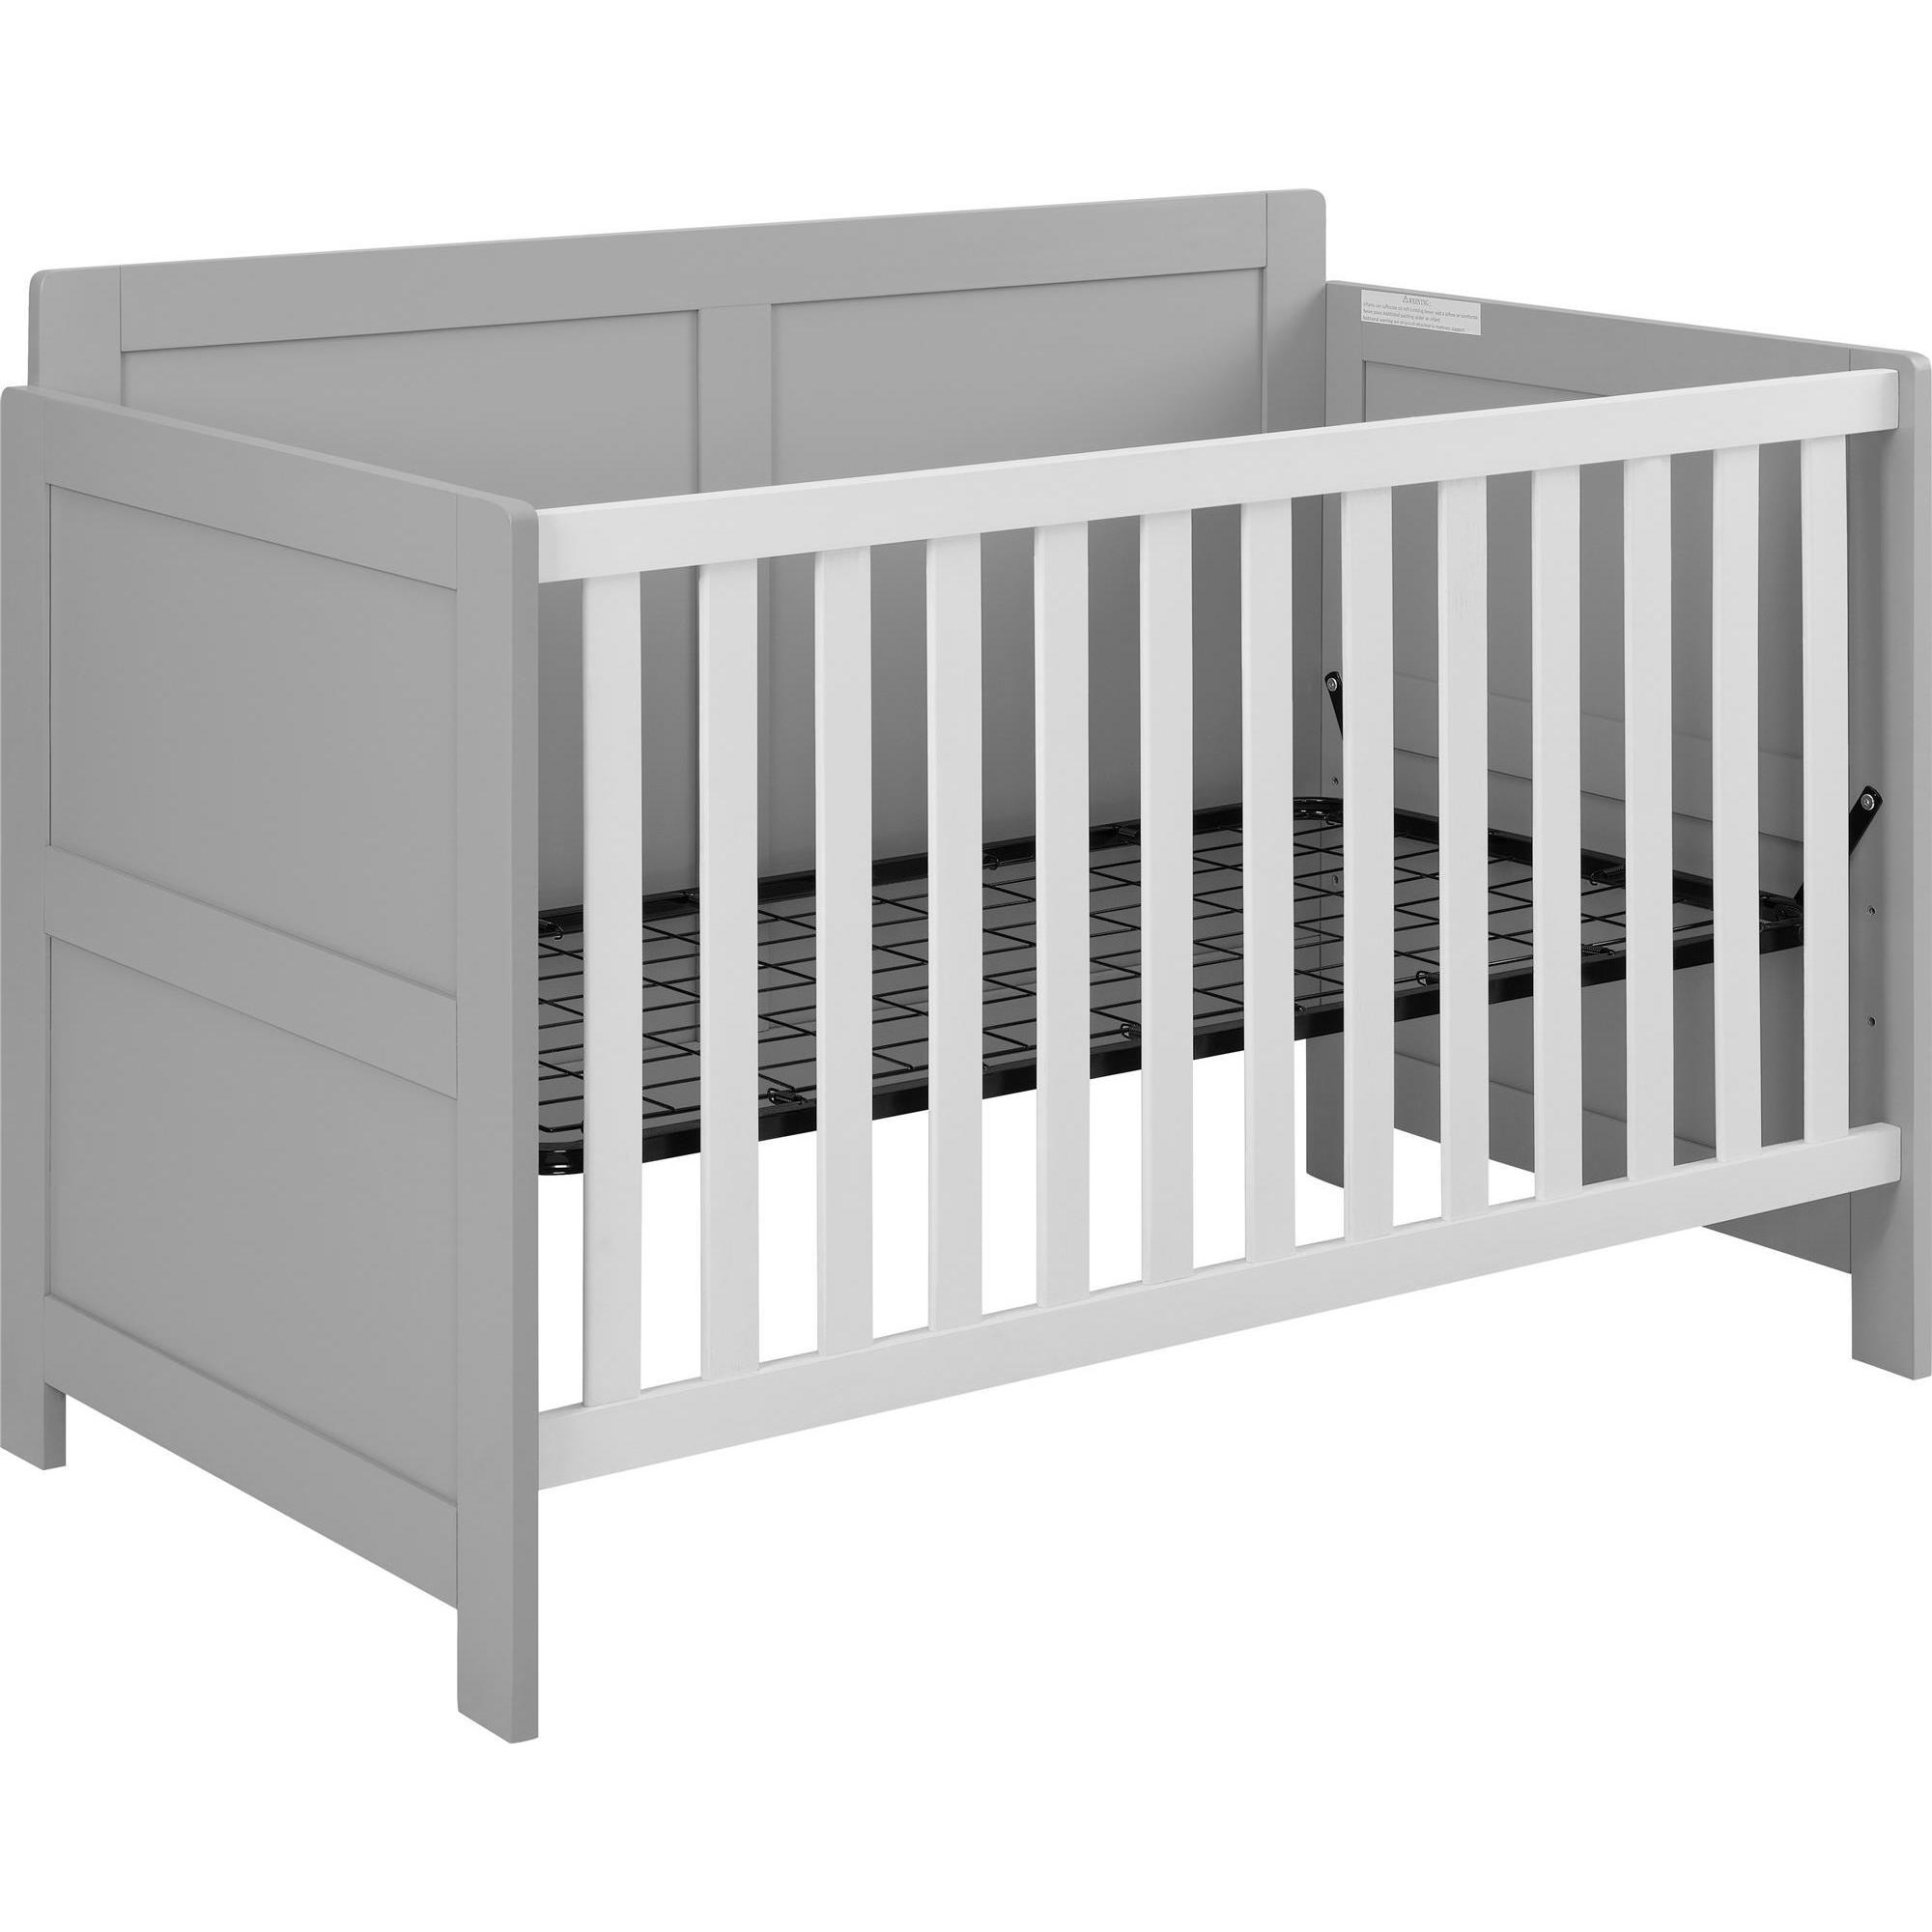 drawer crib solano drawers x white for with baby underneath intended in size ideas convertible graco